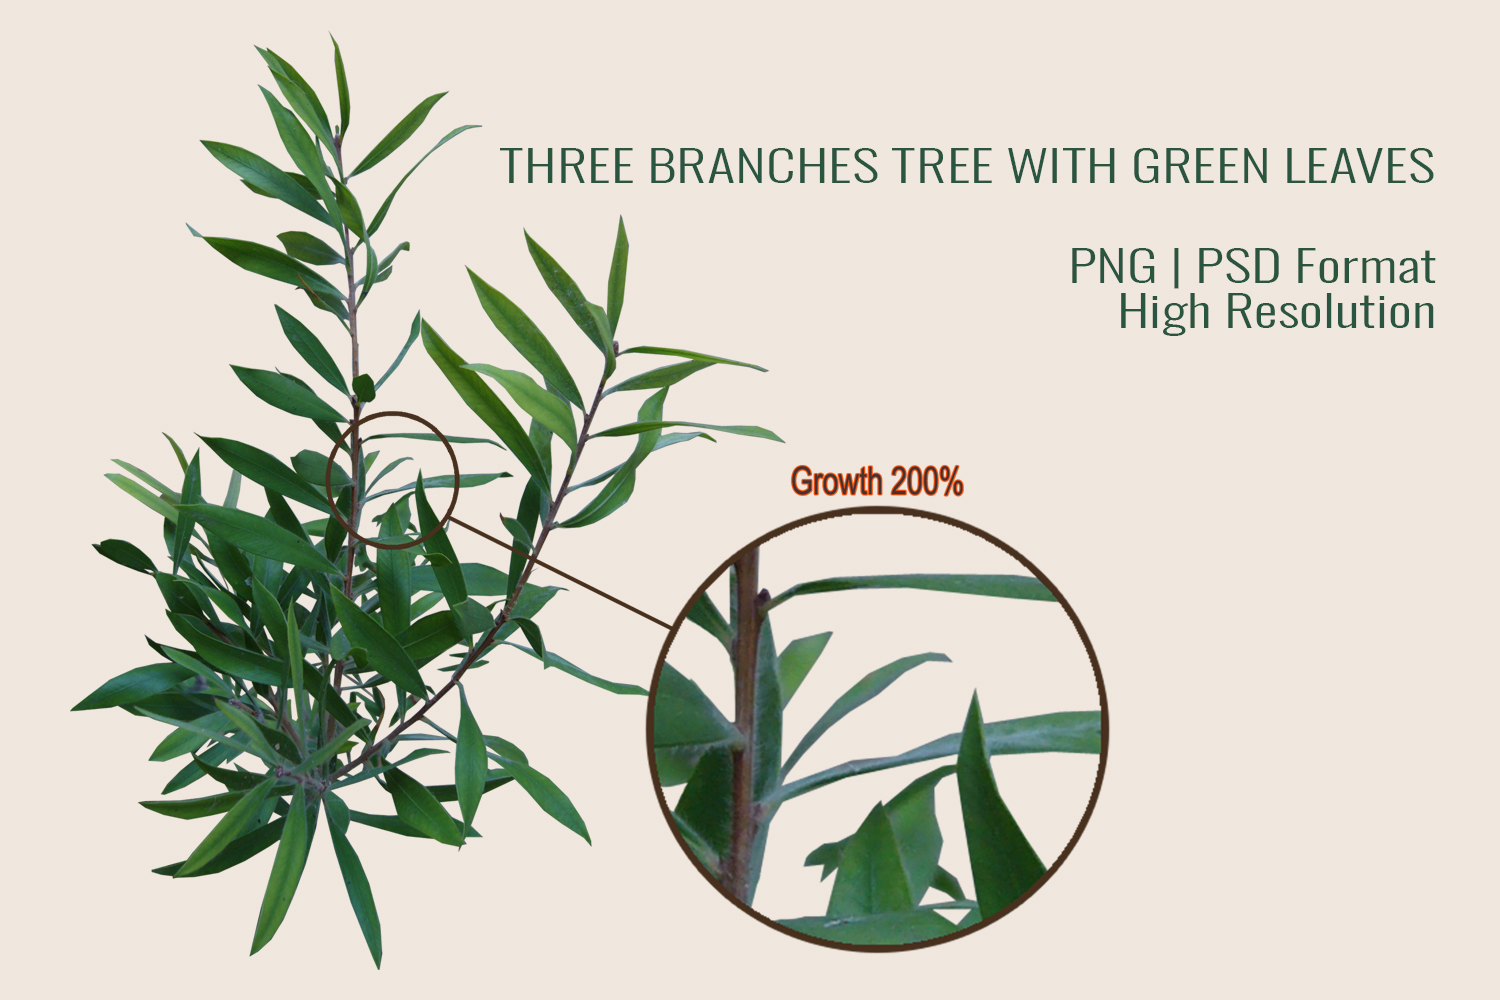 Three Branches Tree With Green Leaves PNG|PSD example image 7